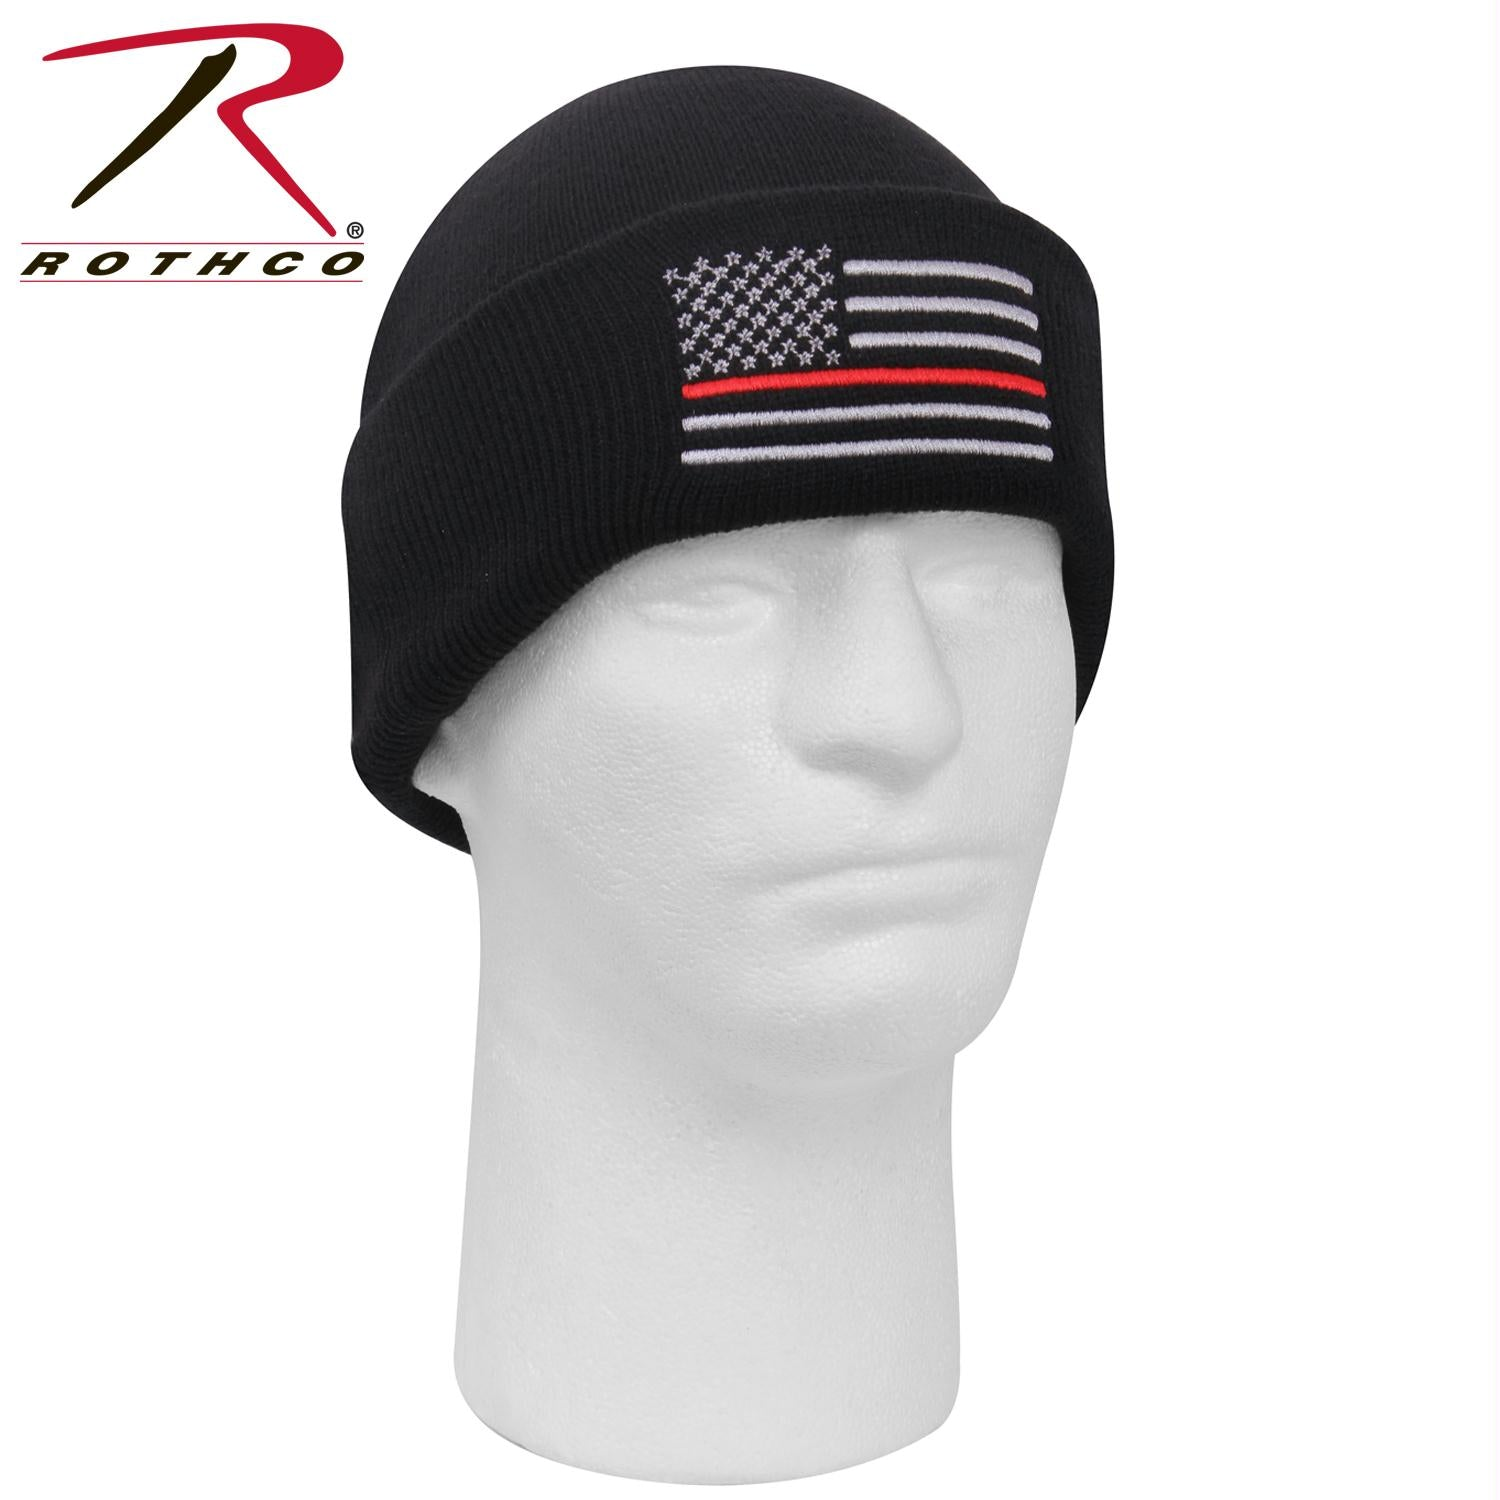 Rothco Deluxe Thin Red Line Watch Cap - Black / One Size